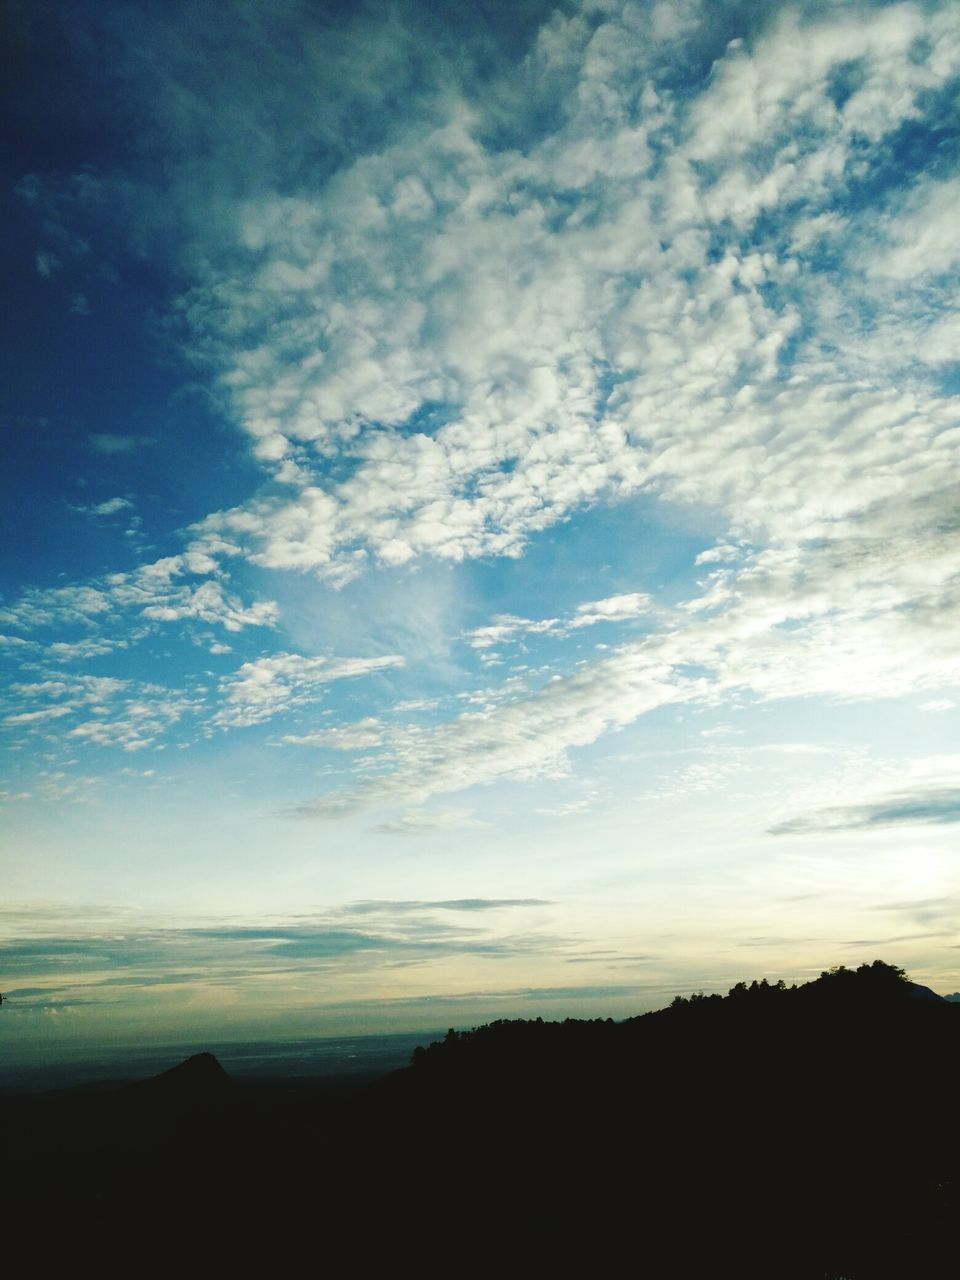 silhouette, sky, nature, sunset, tranquil scene, landscape, scenics, no people, beauty in nature, outdoors, day